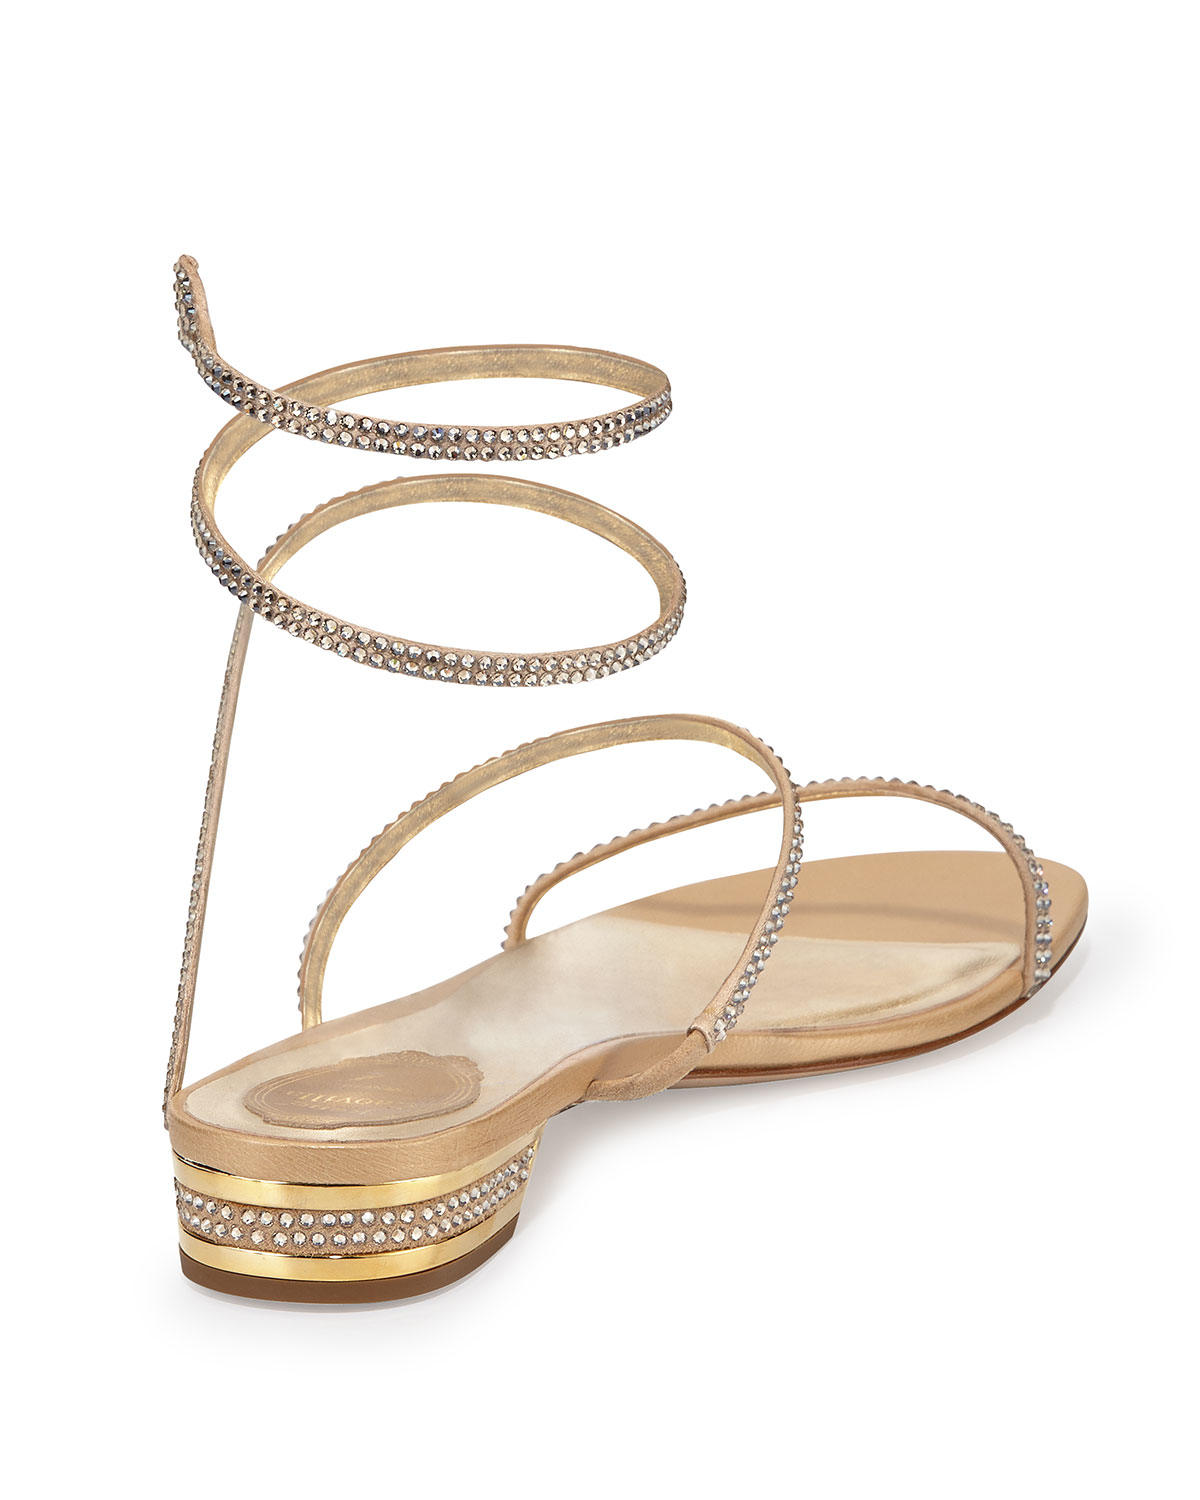 a22231df30e Lyst - Rene Caovilla Crystal Snake-Coil Flat Sandals in Metallic